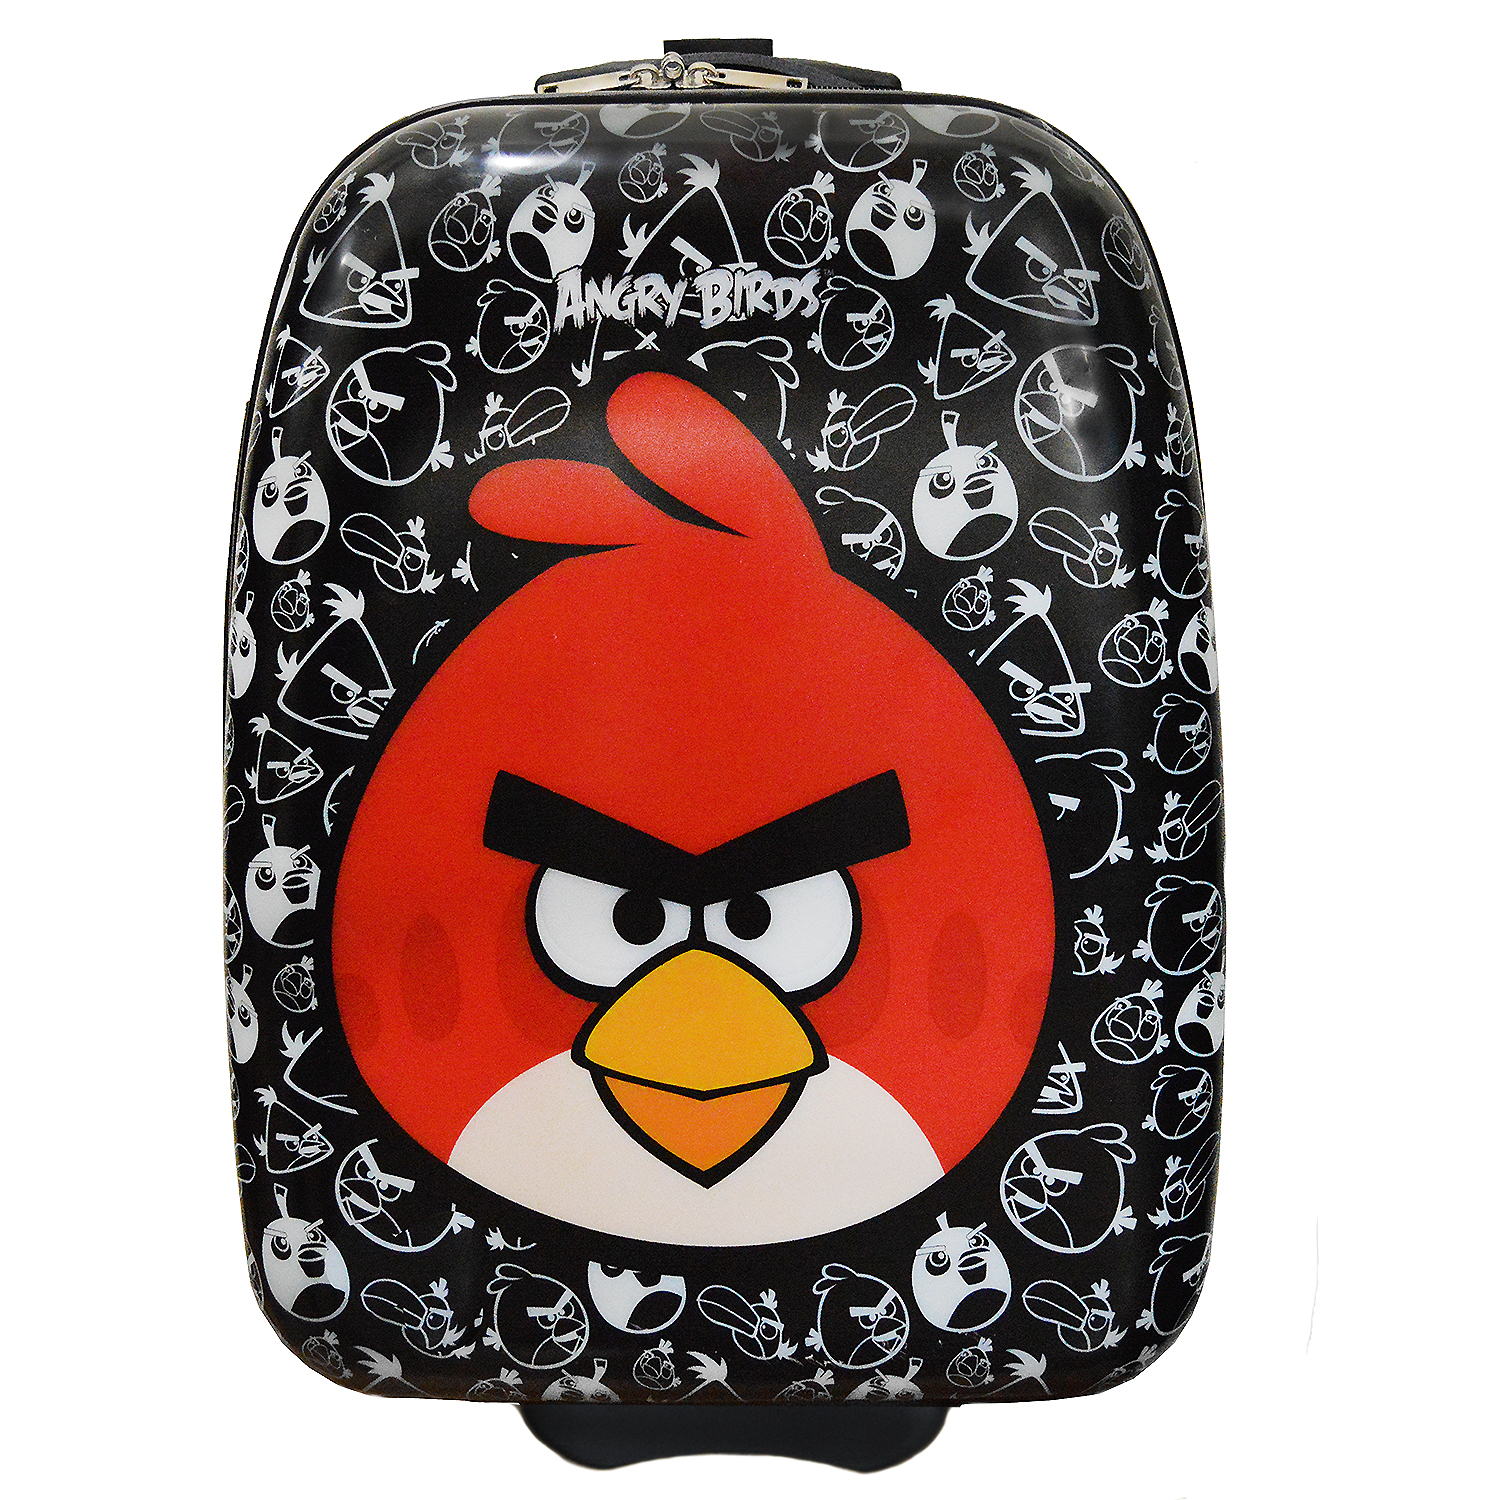 Angry Birds Big Red Hard-Shell Rolling Luggage Case